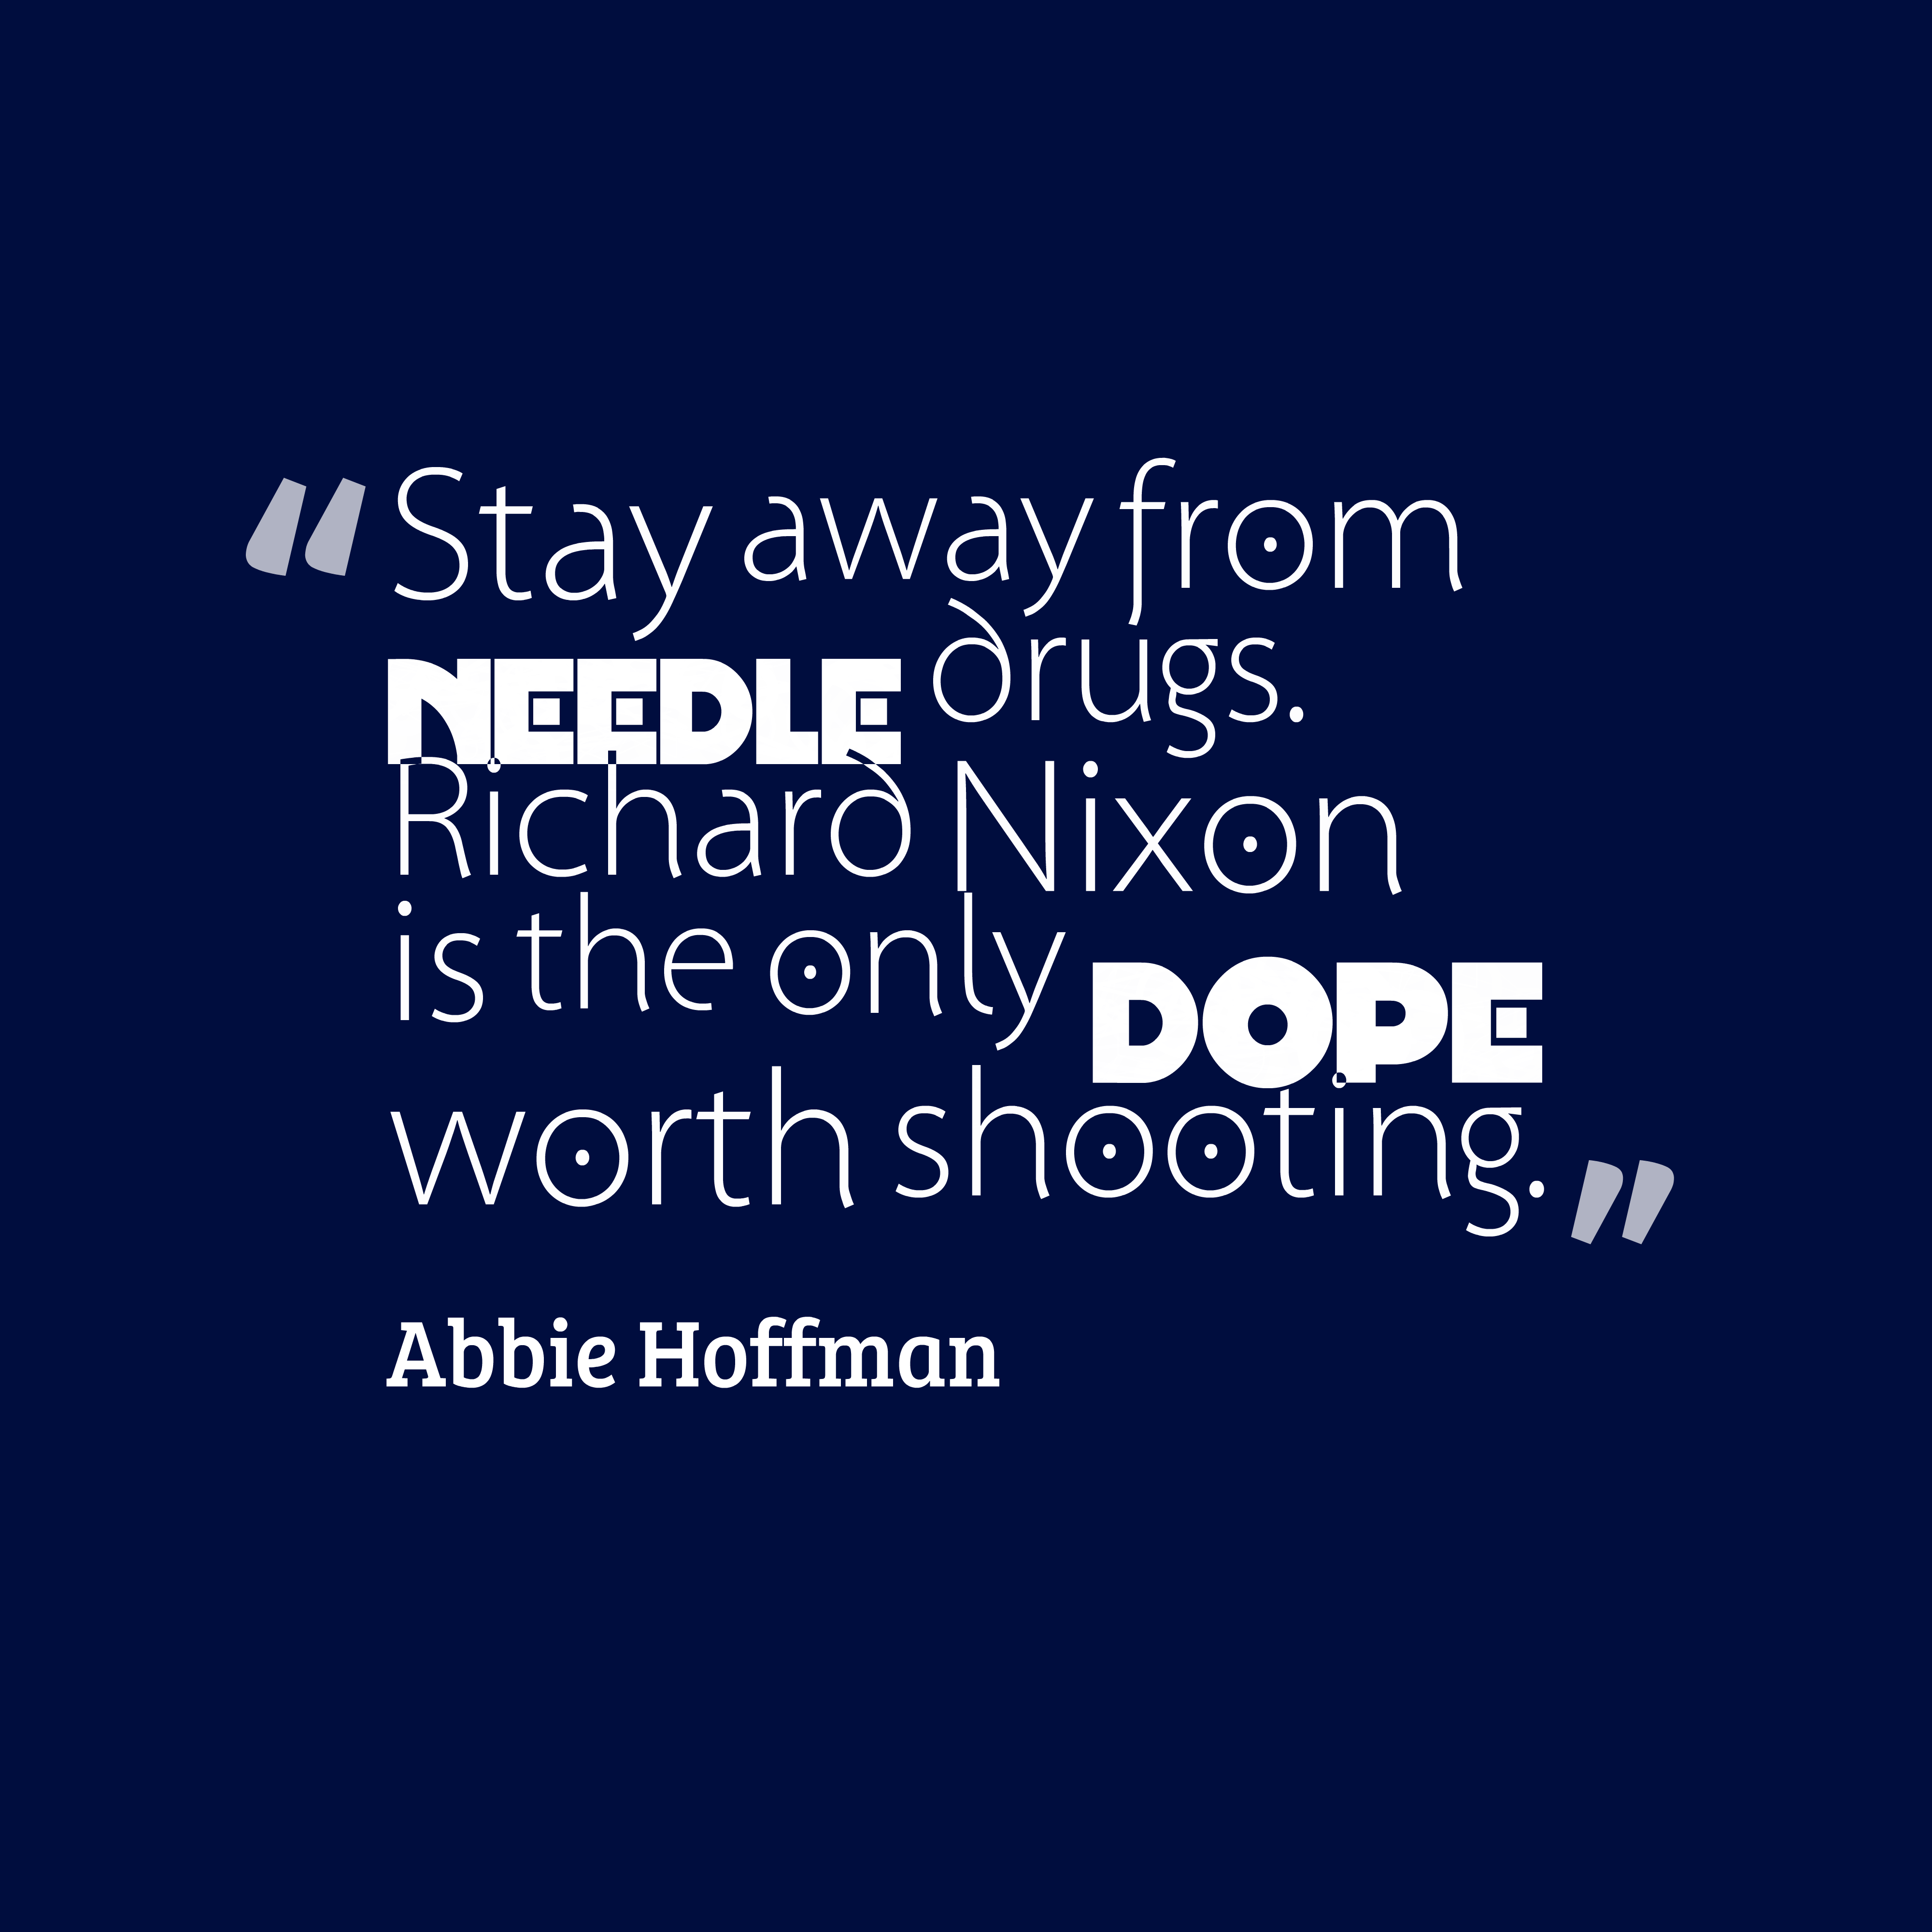 Shooting Quotes 7 Best Abbie Hoffman Quotes Images